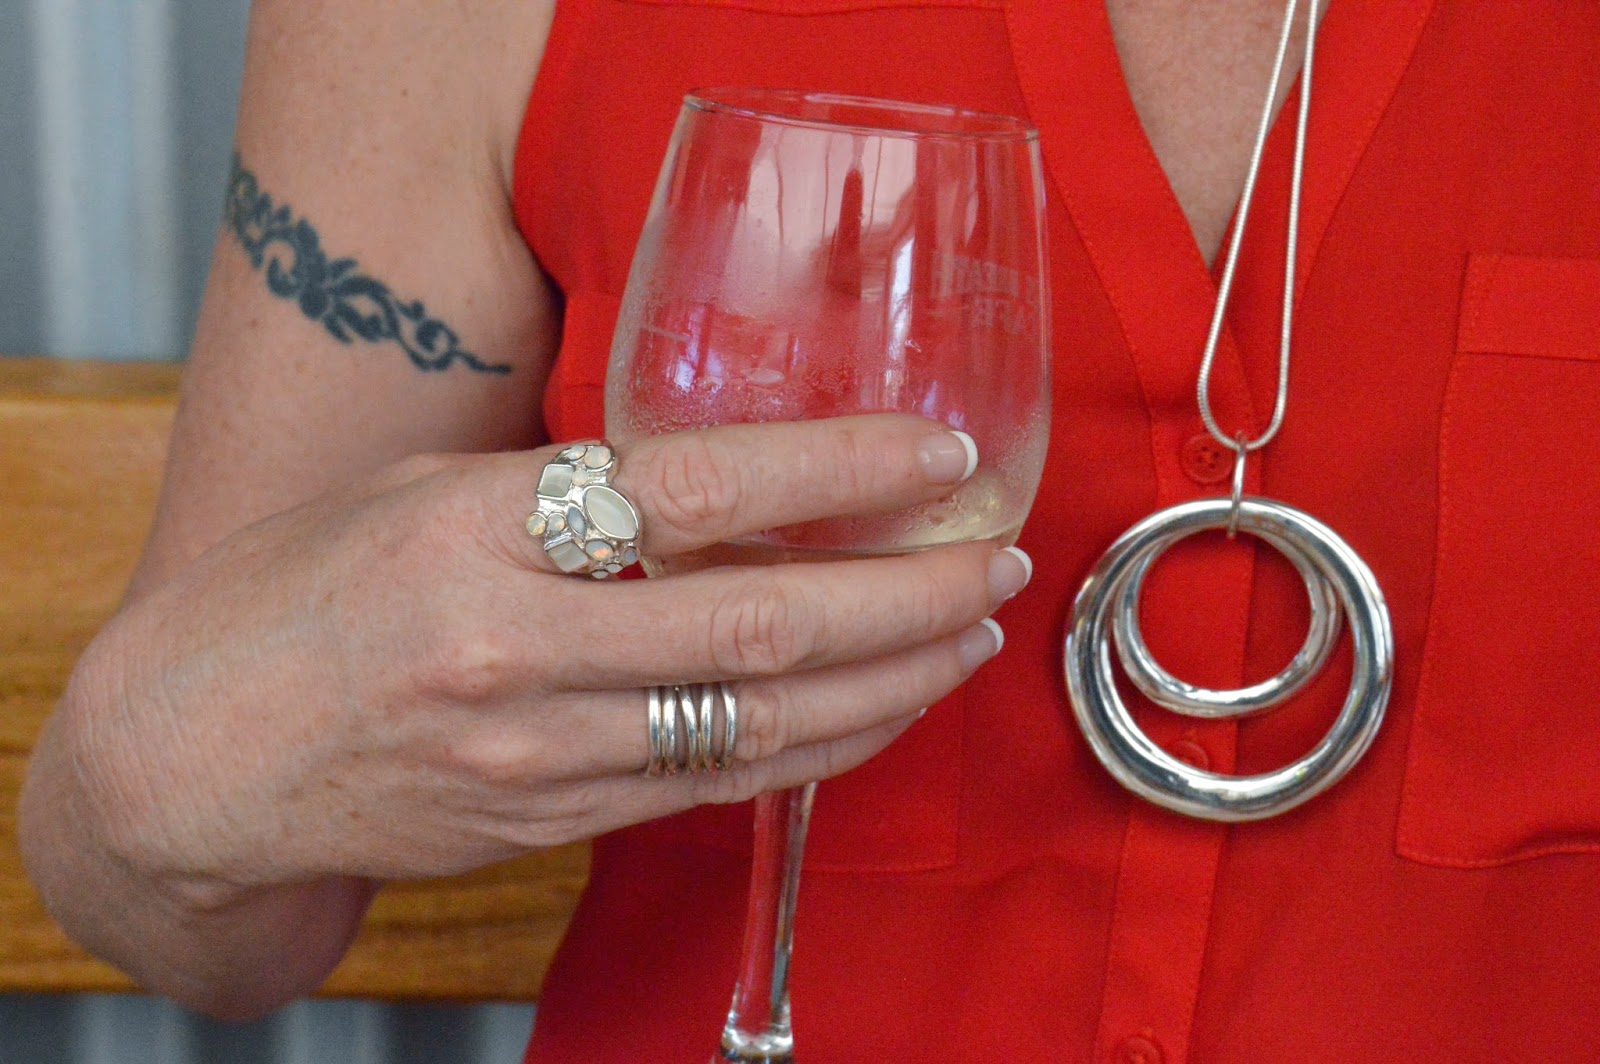 SFH wearing silver rings and Colette necklace.